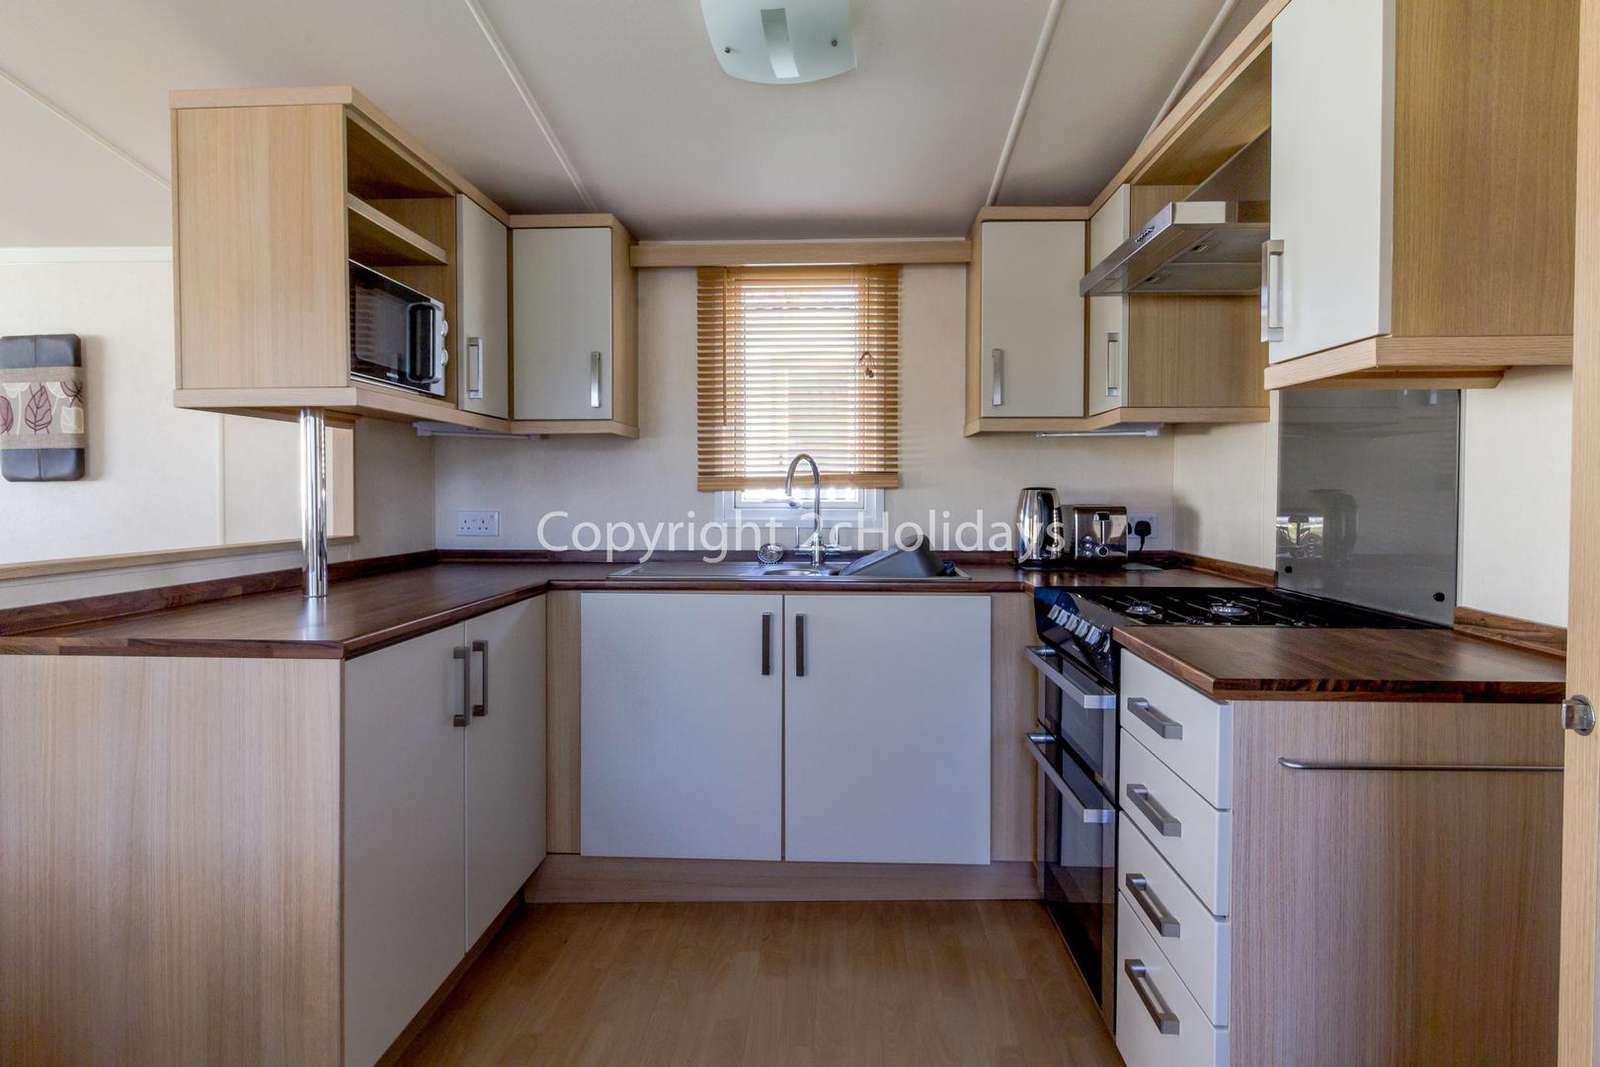 A fully equipped modern kitchen, perfect for self-catering holidays!